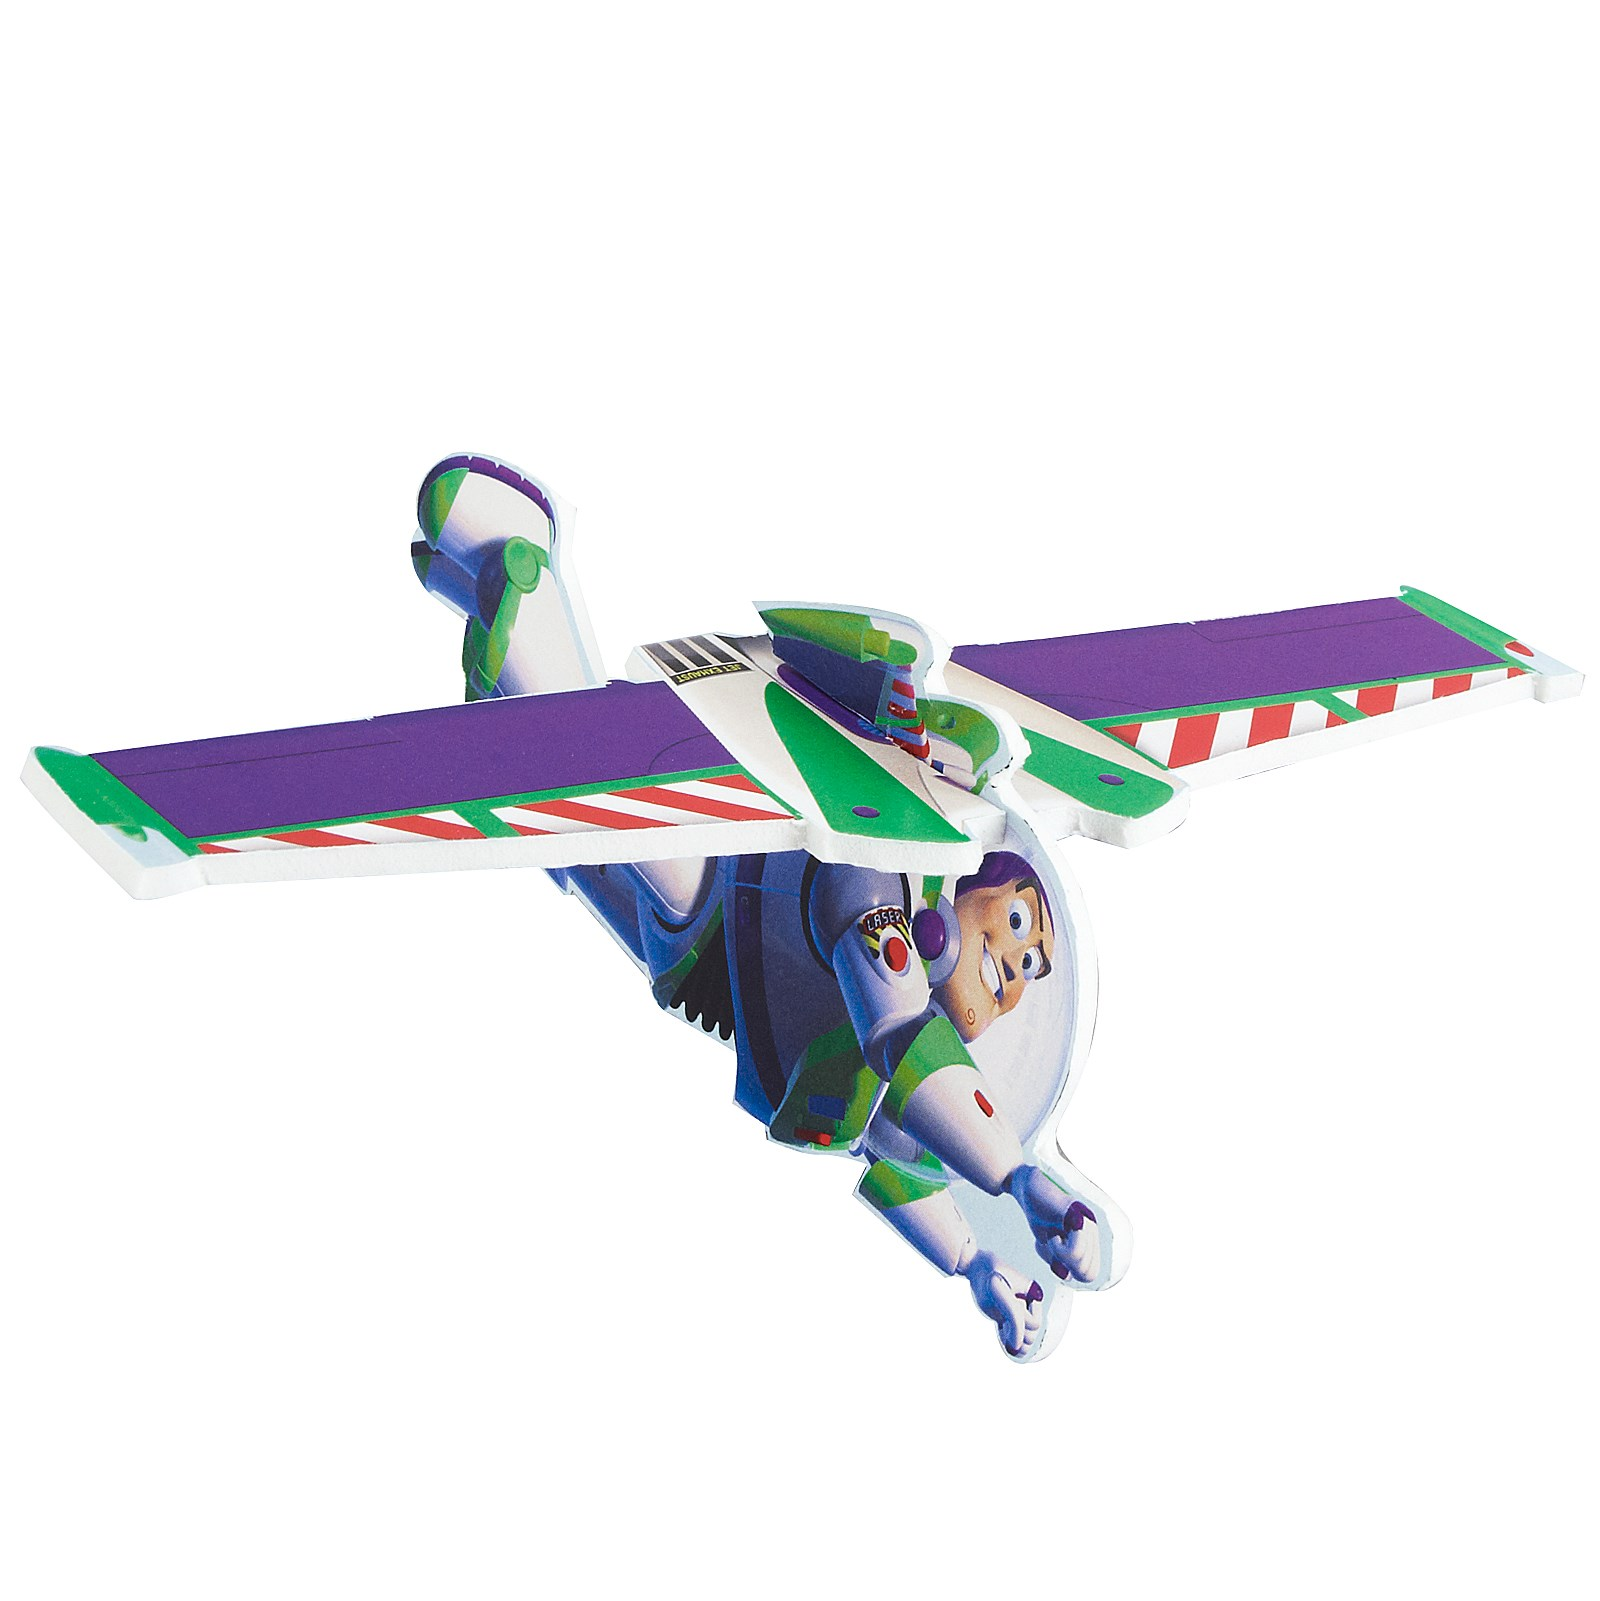 Toy Story 3 Foam Gliders 4 count